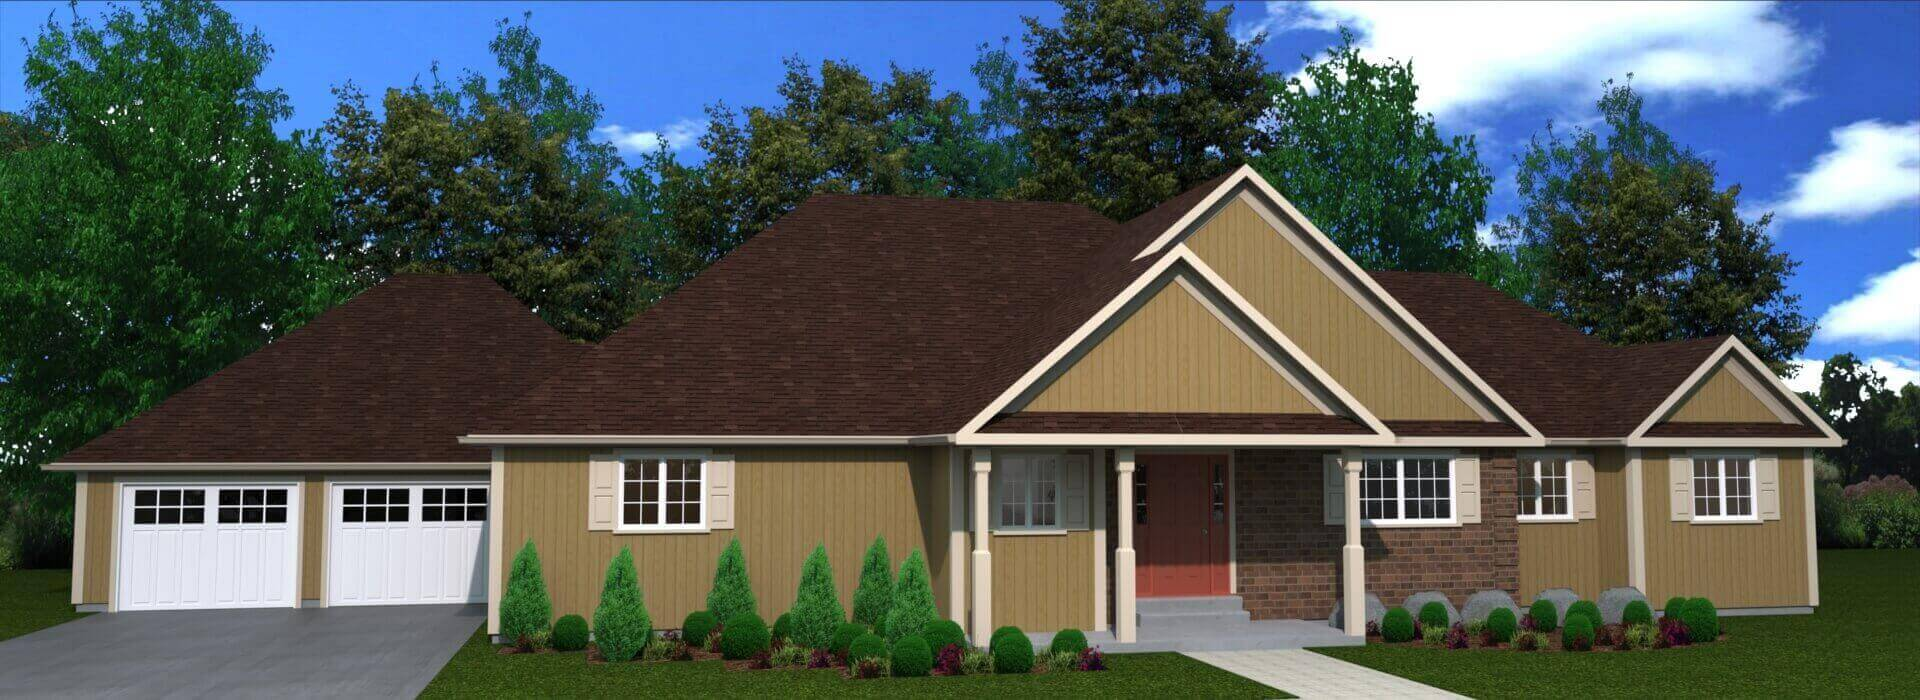 2097 sq.ft. timber mart house 3 bed 2 bath exterior render